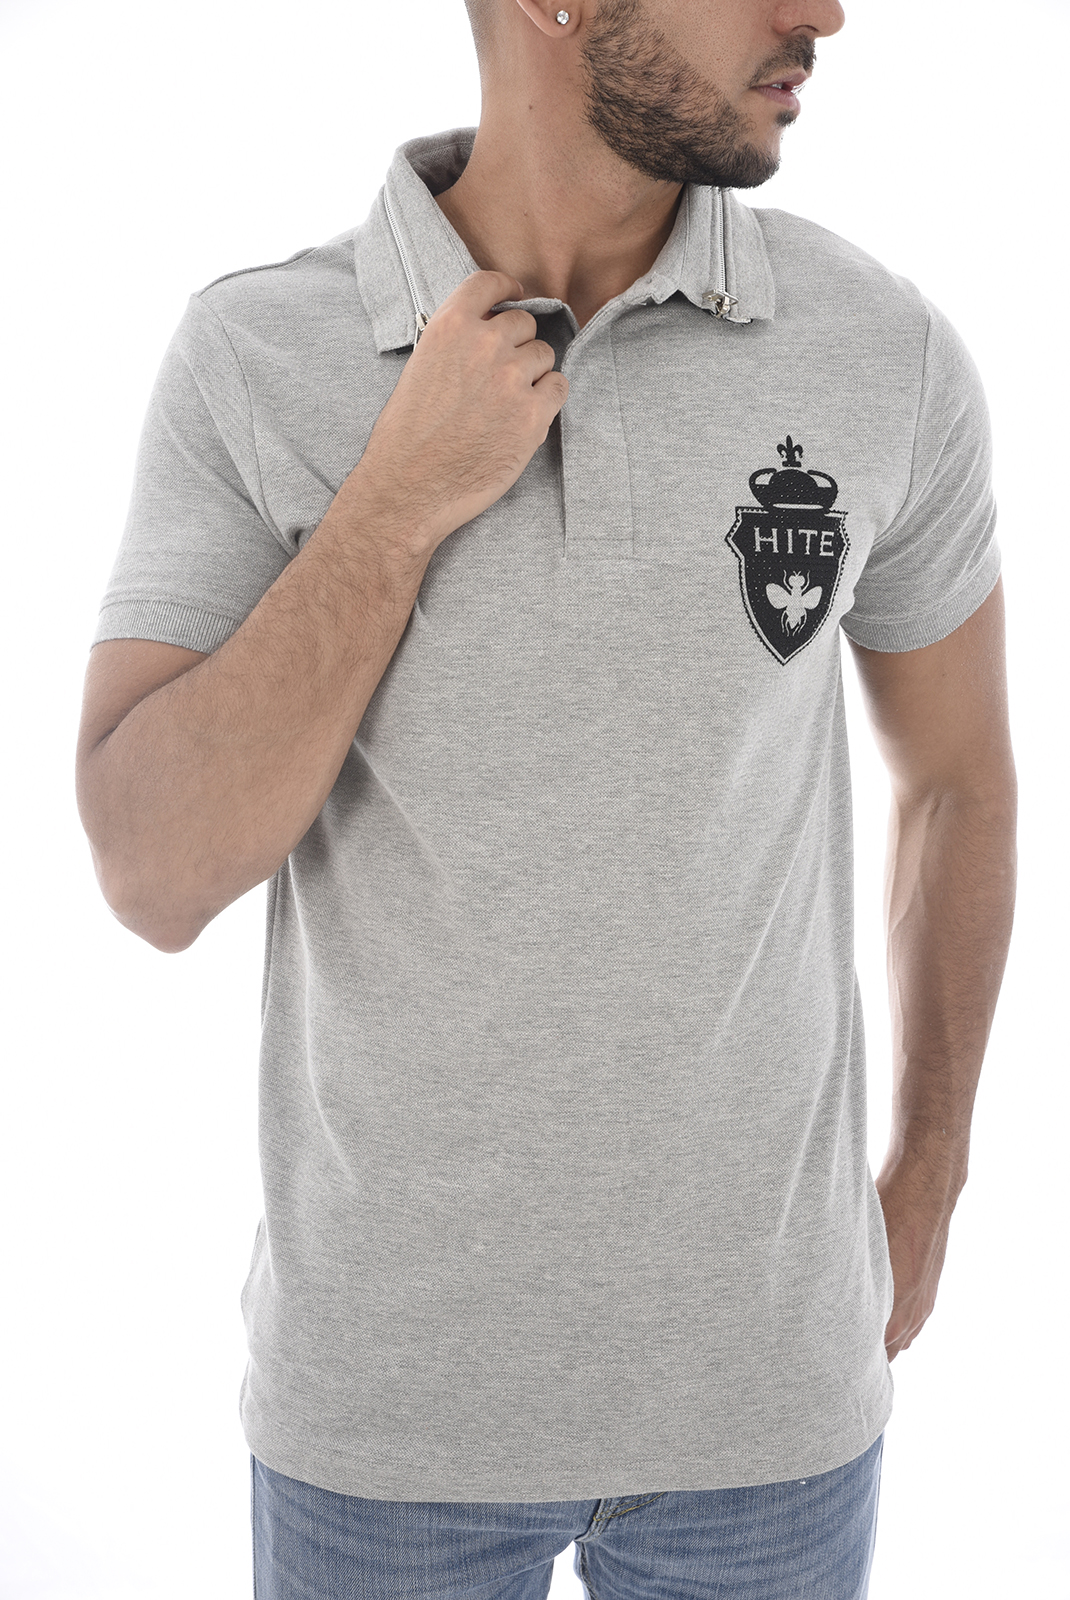 Tee-shirts  Hite couture PRISIER LIGHT GREY MEL